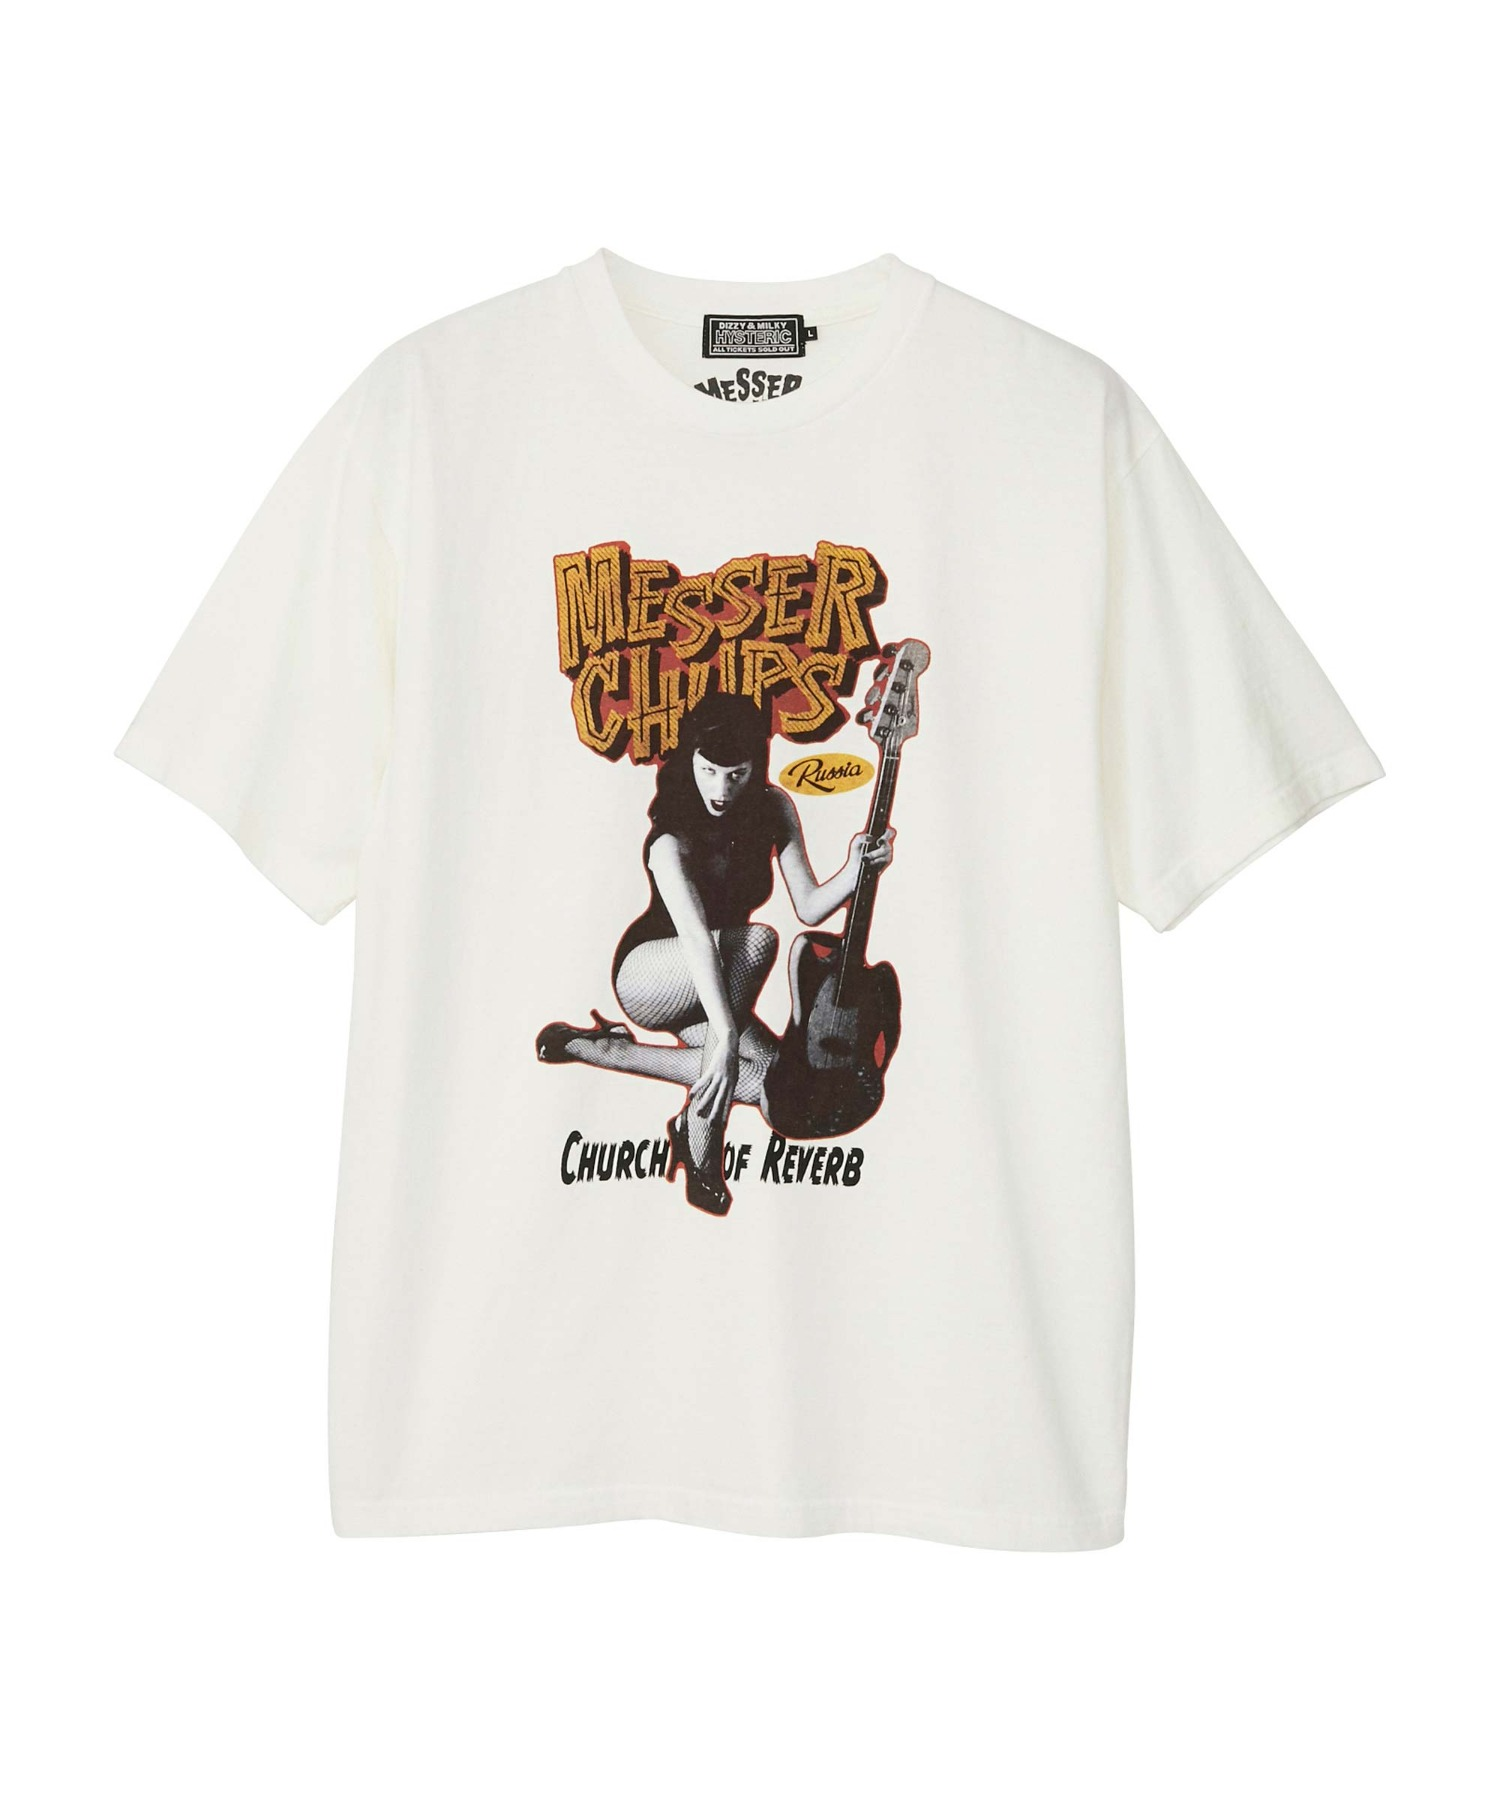 MESSER CHUPS/MC FROM RUSSIA Tシャツ